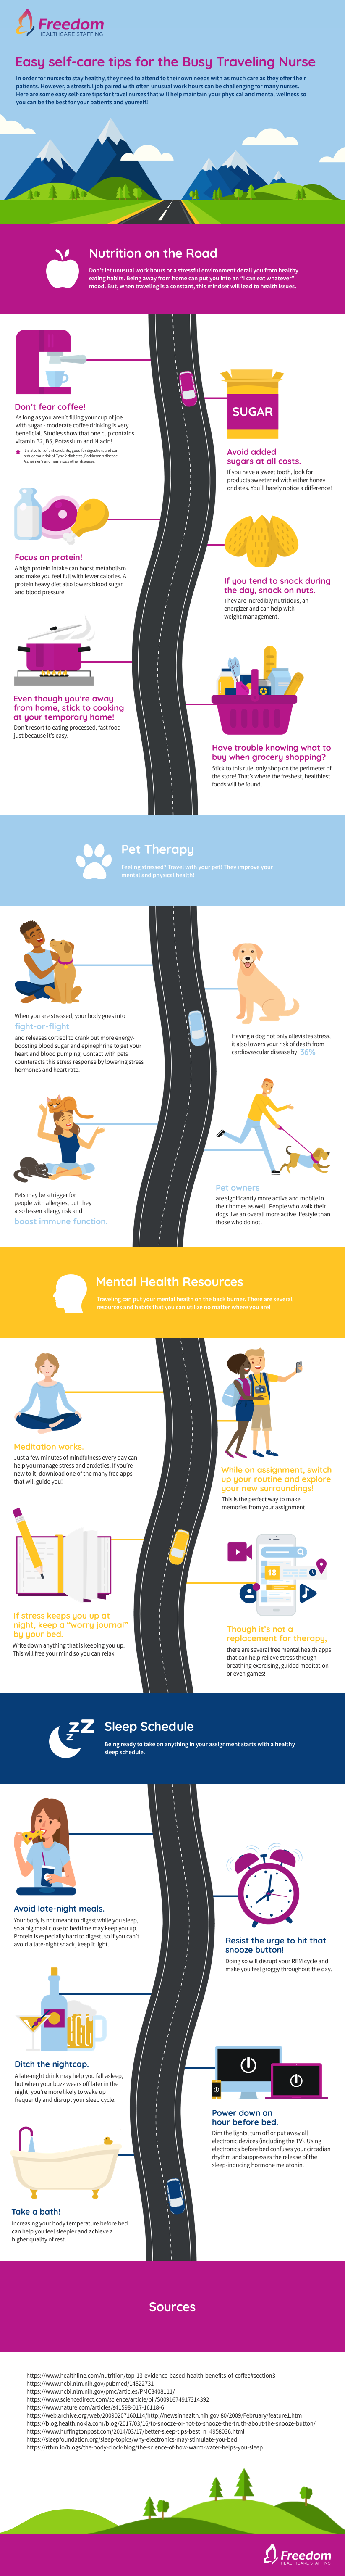 freedom healthcare self care tips infographic